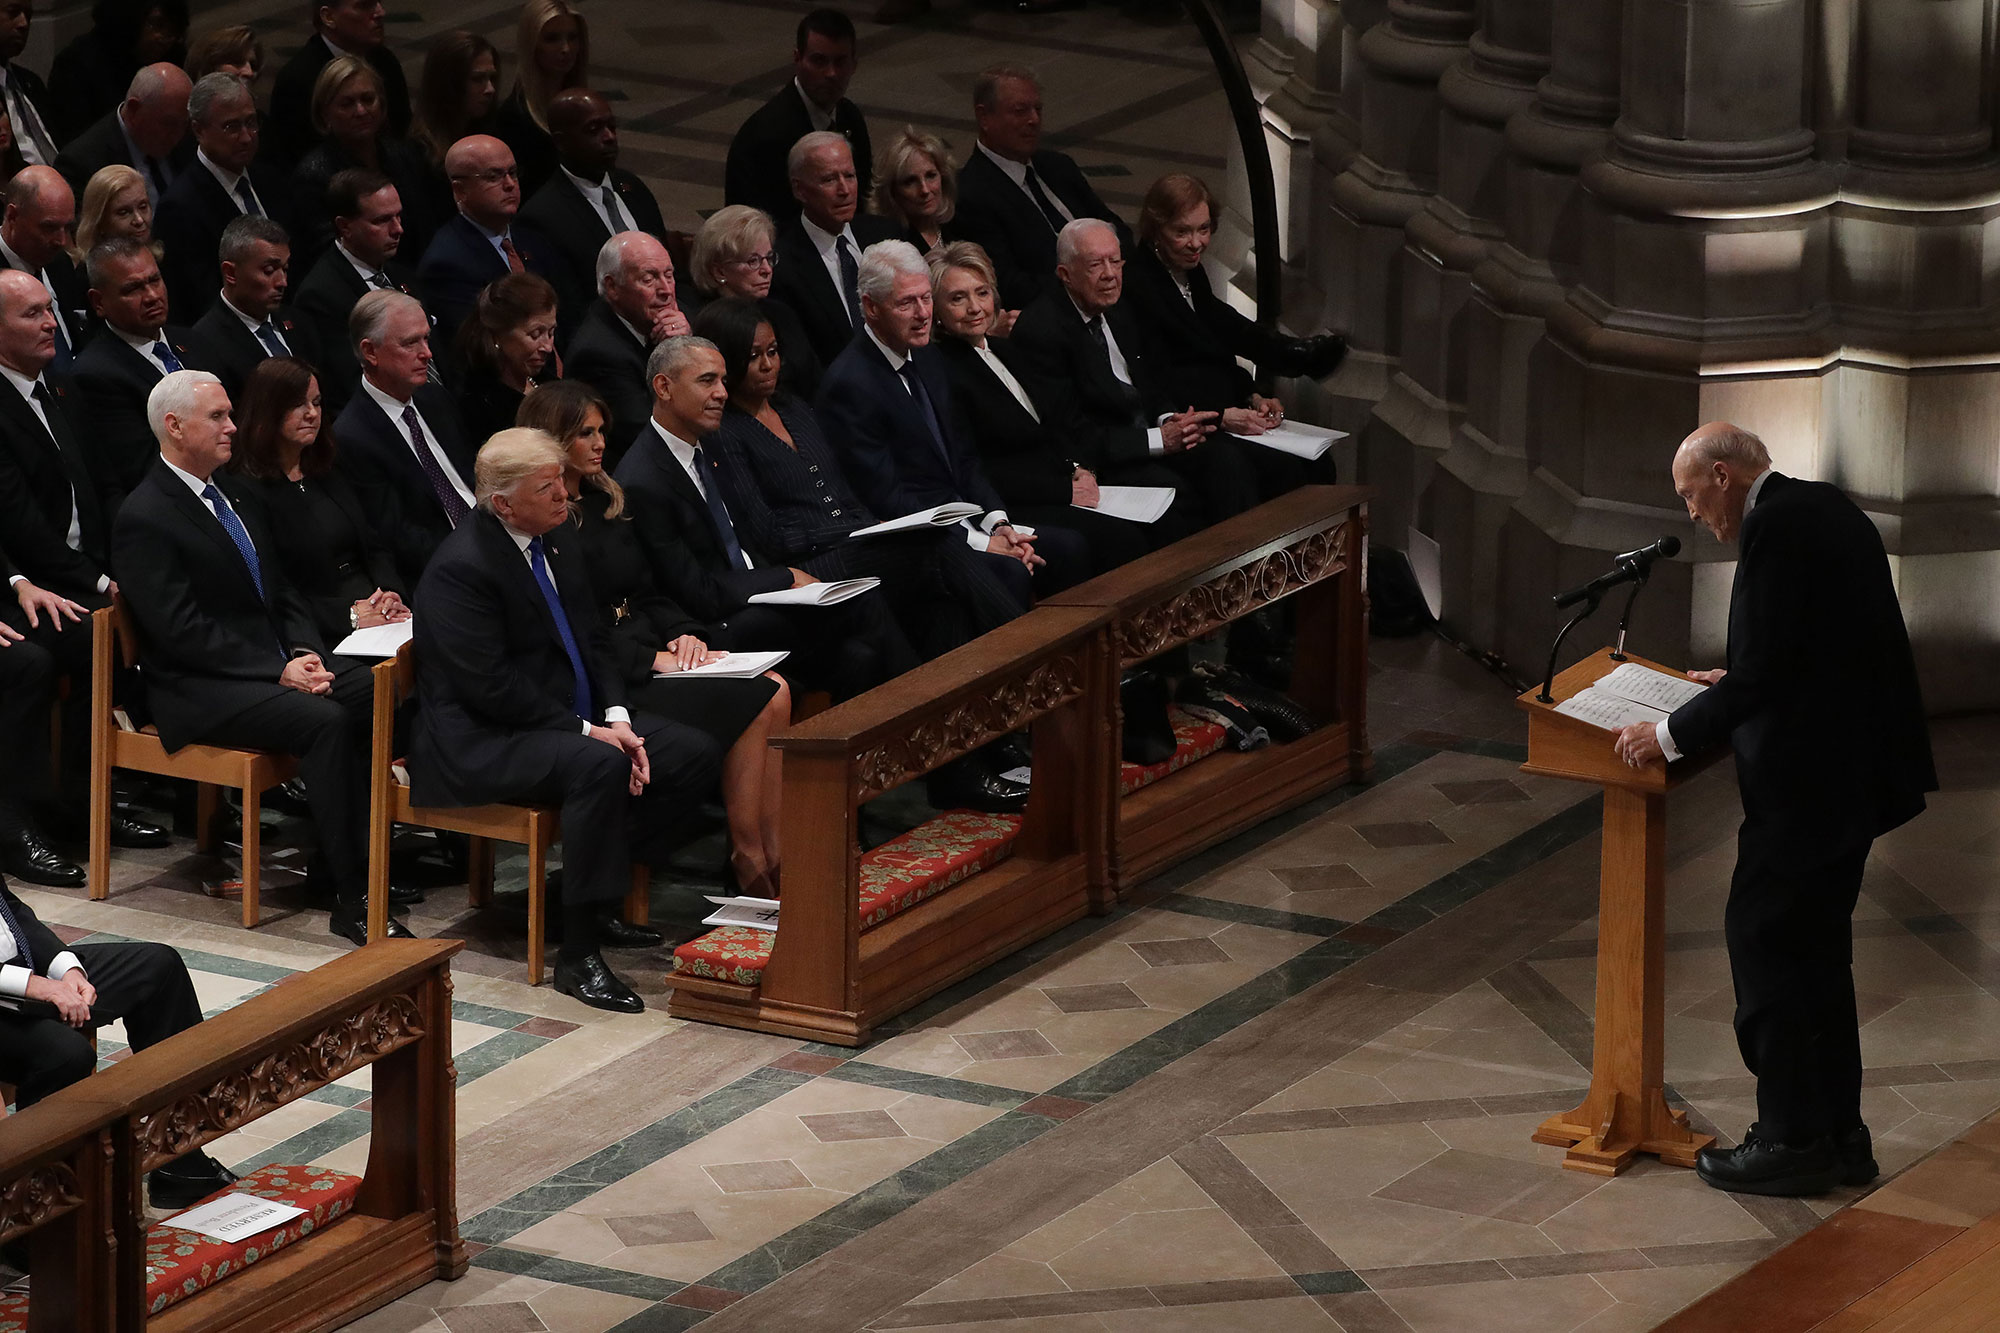 "<div class=""meta image-caption""><div class=""origin-logo origin-image none""><span>none</span></div><span class=""caption-text"">Former U.S. Sen. Alan K. Simpson (R-WY) delivers remarks during the state funeral for former President George H.W. Bush. (Chip Somodevilla/Getty Images)</span></div>"